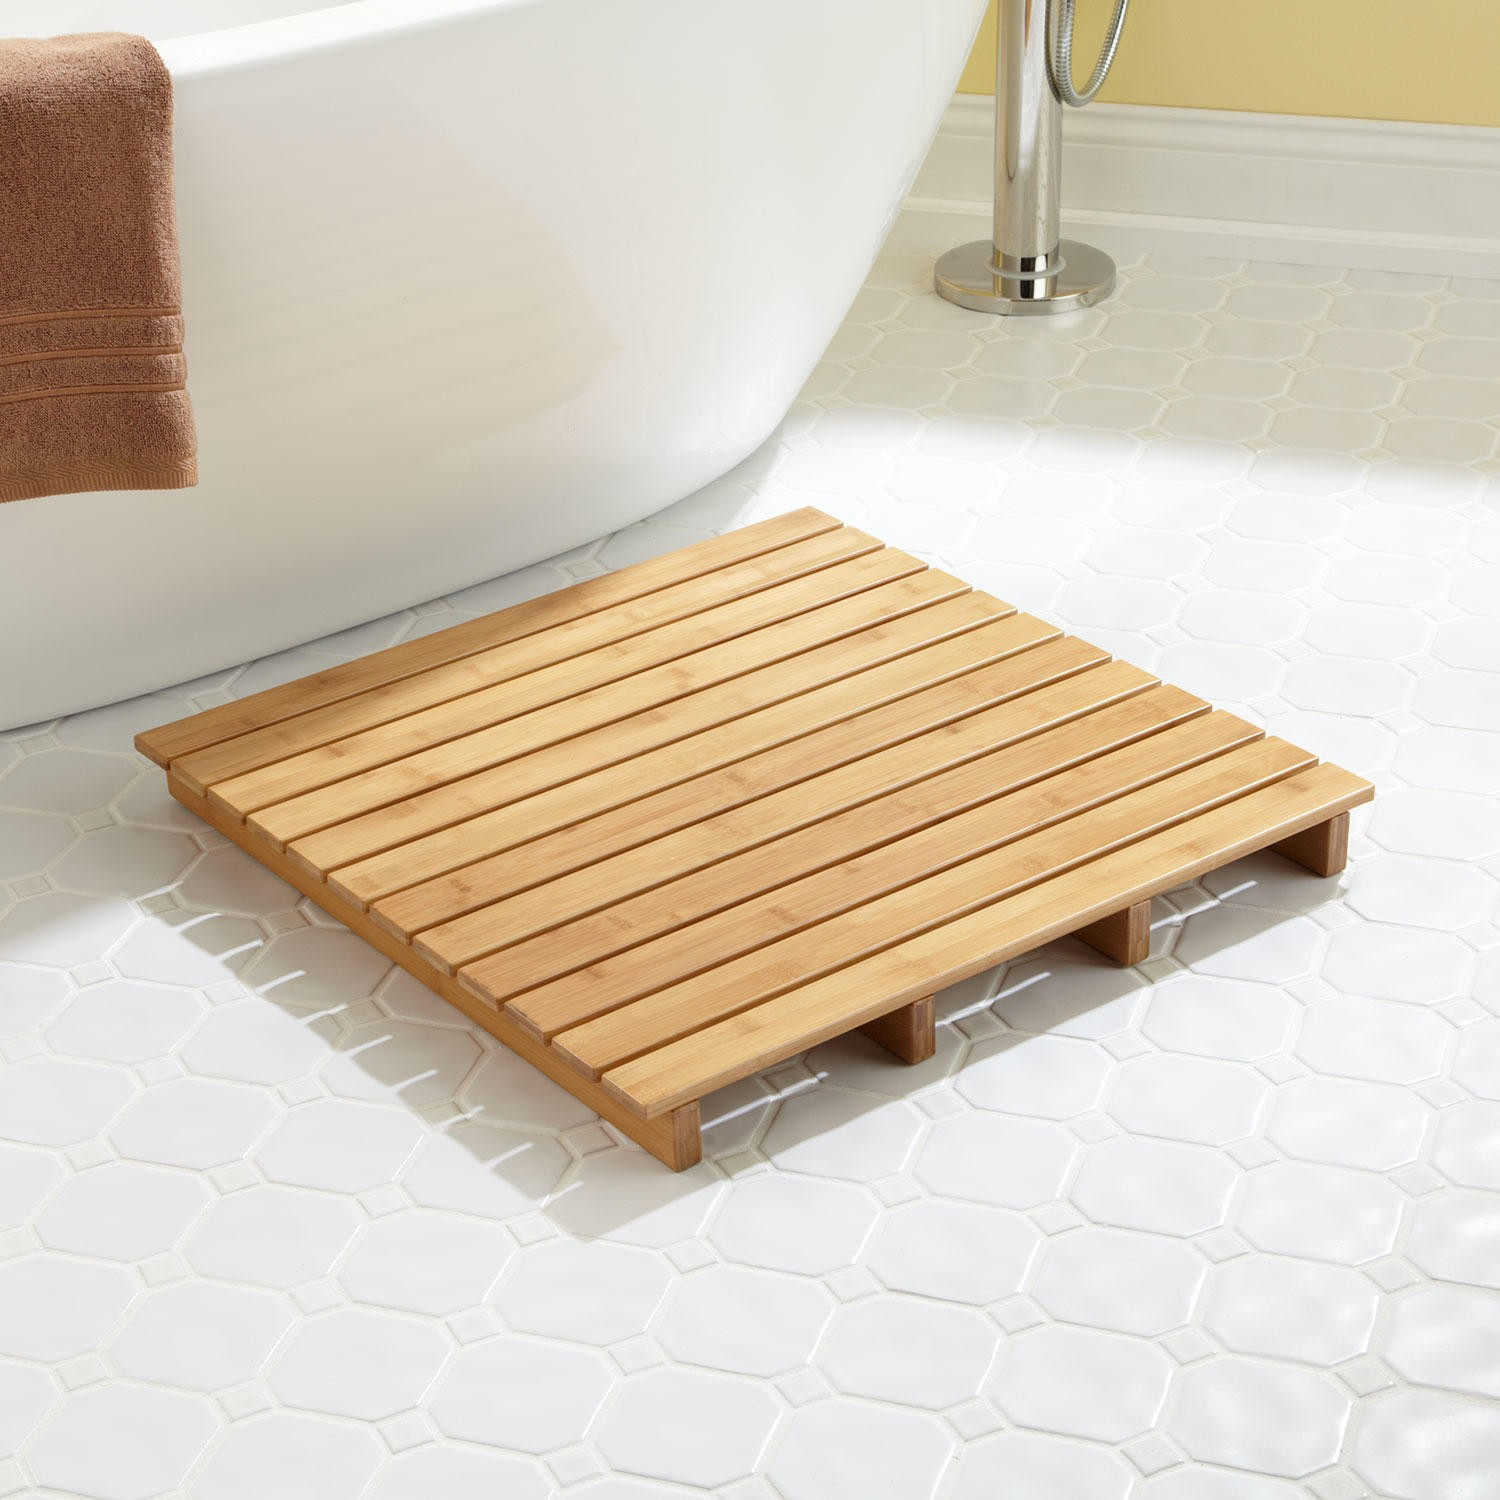 Bath Mat Ideas To Make Your Bathroom Feel More Like A Spa - Buy bath rugs for bathroom decorating ideas